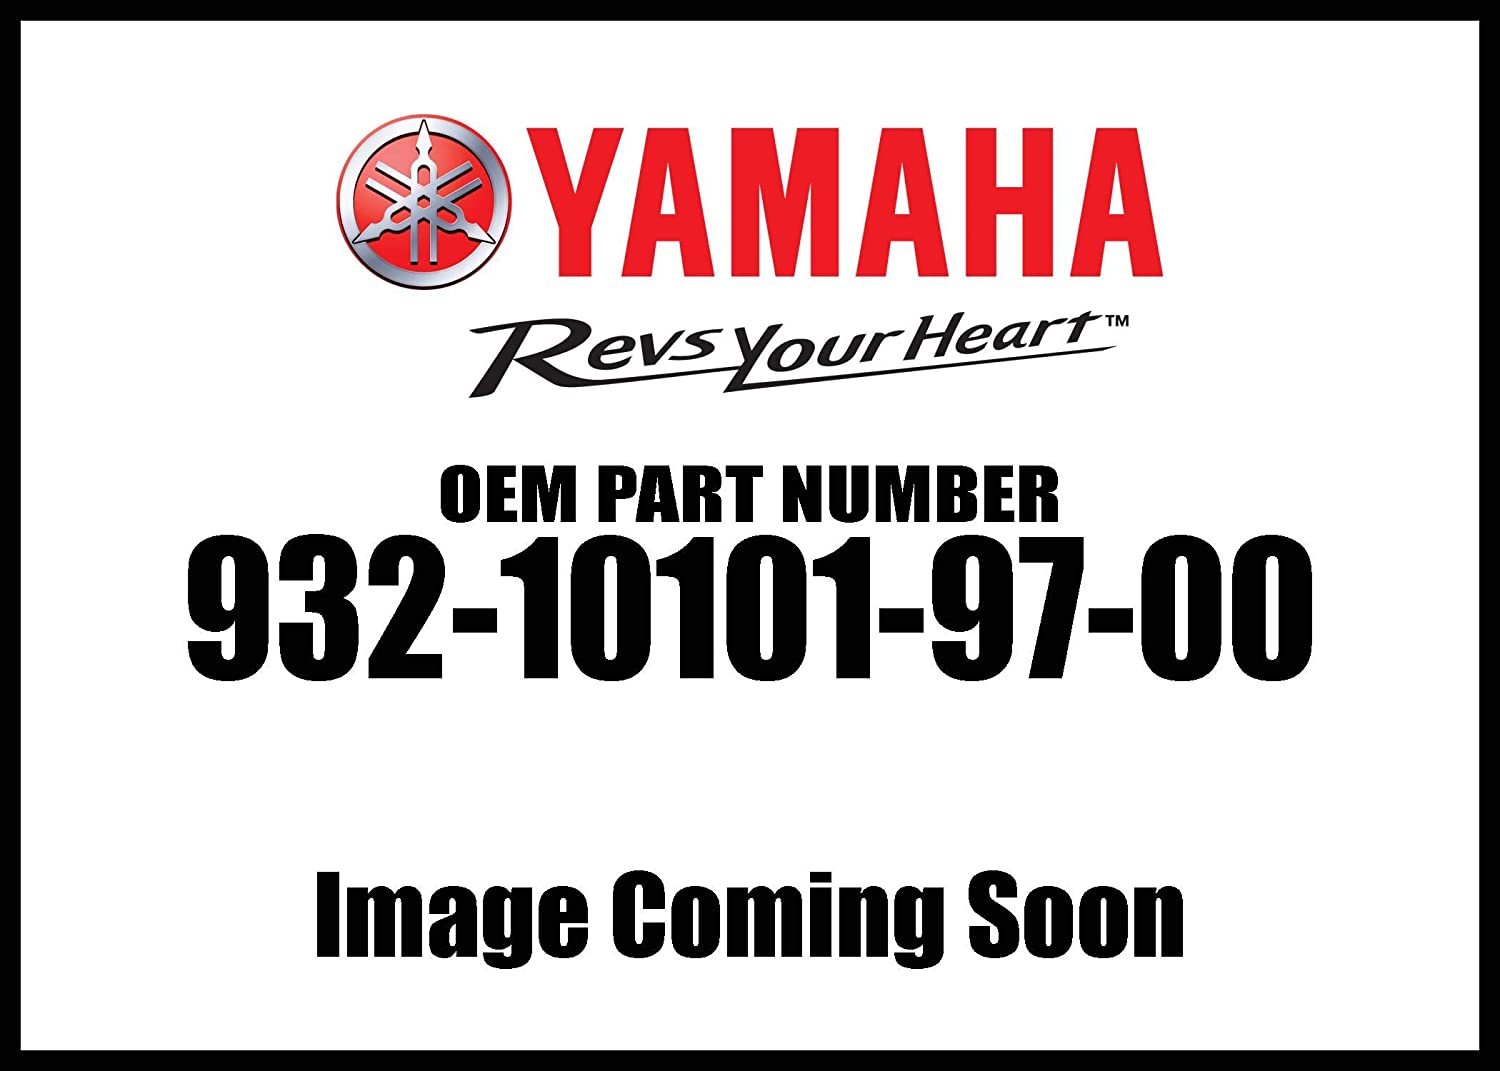 Yamaha 93210-10197-00 O-RING; 932101019700